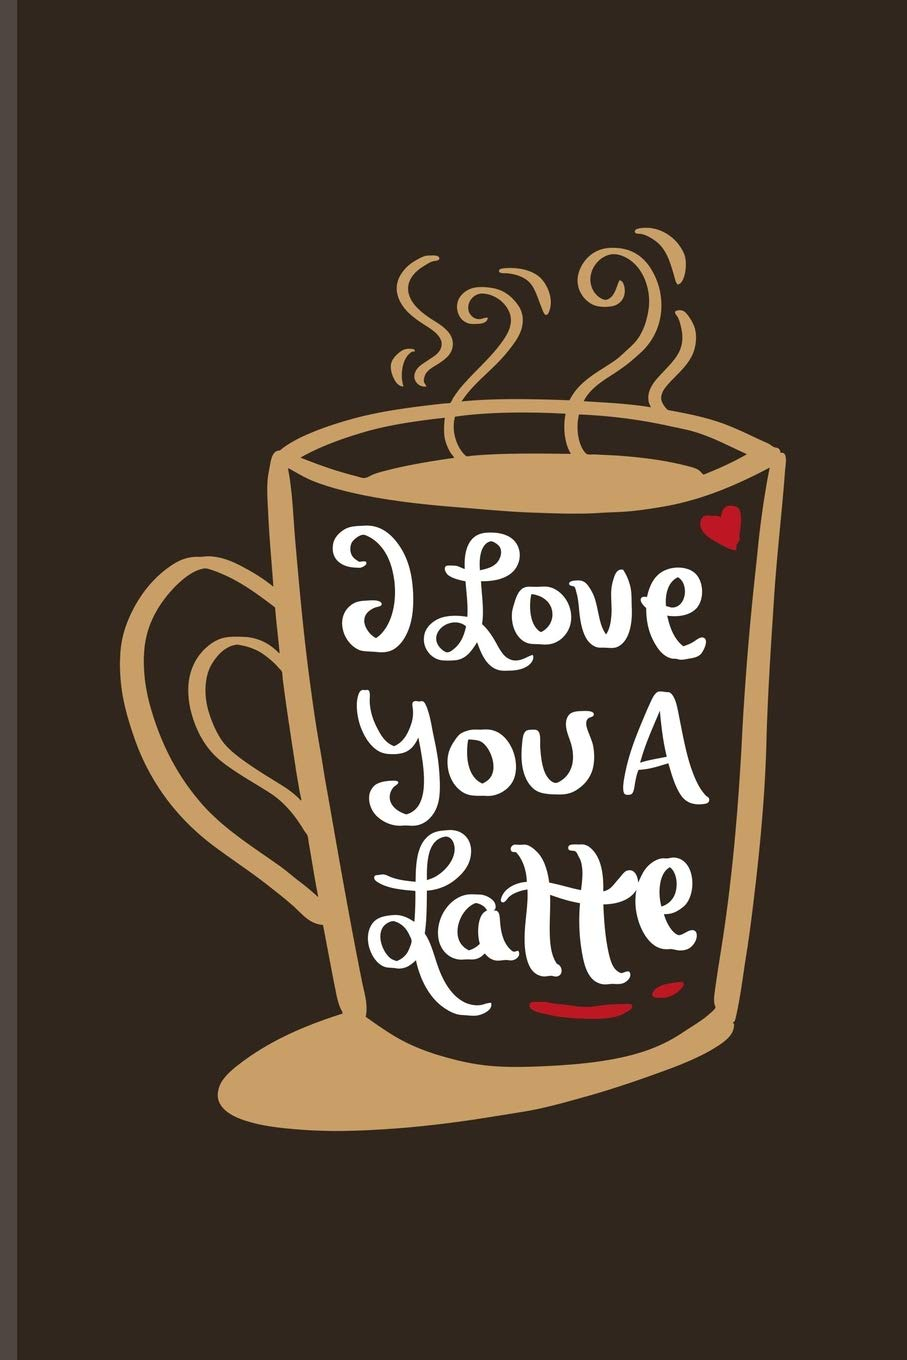 I Love You A Latte Short Funny Love Quote Journal For Coffee Latte Macchiato Espresso Valentines Day Love Heart Fans 6x9 100 Blank Lined Pages Valentines Yeoys 9781070639284 Amazon Com Books